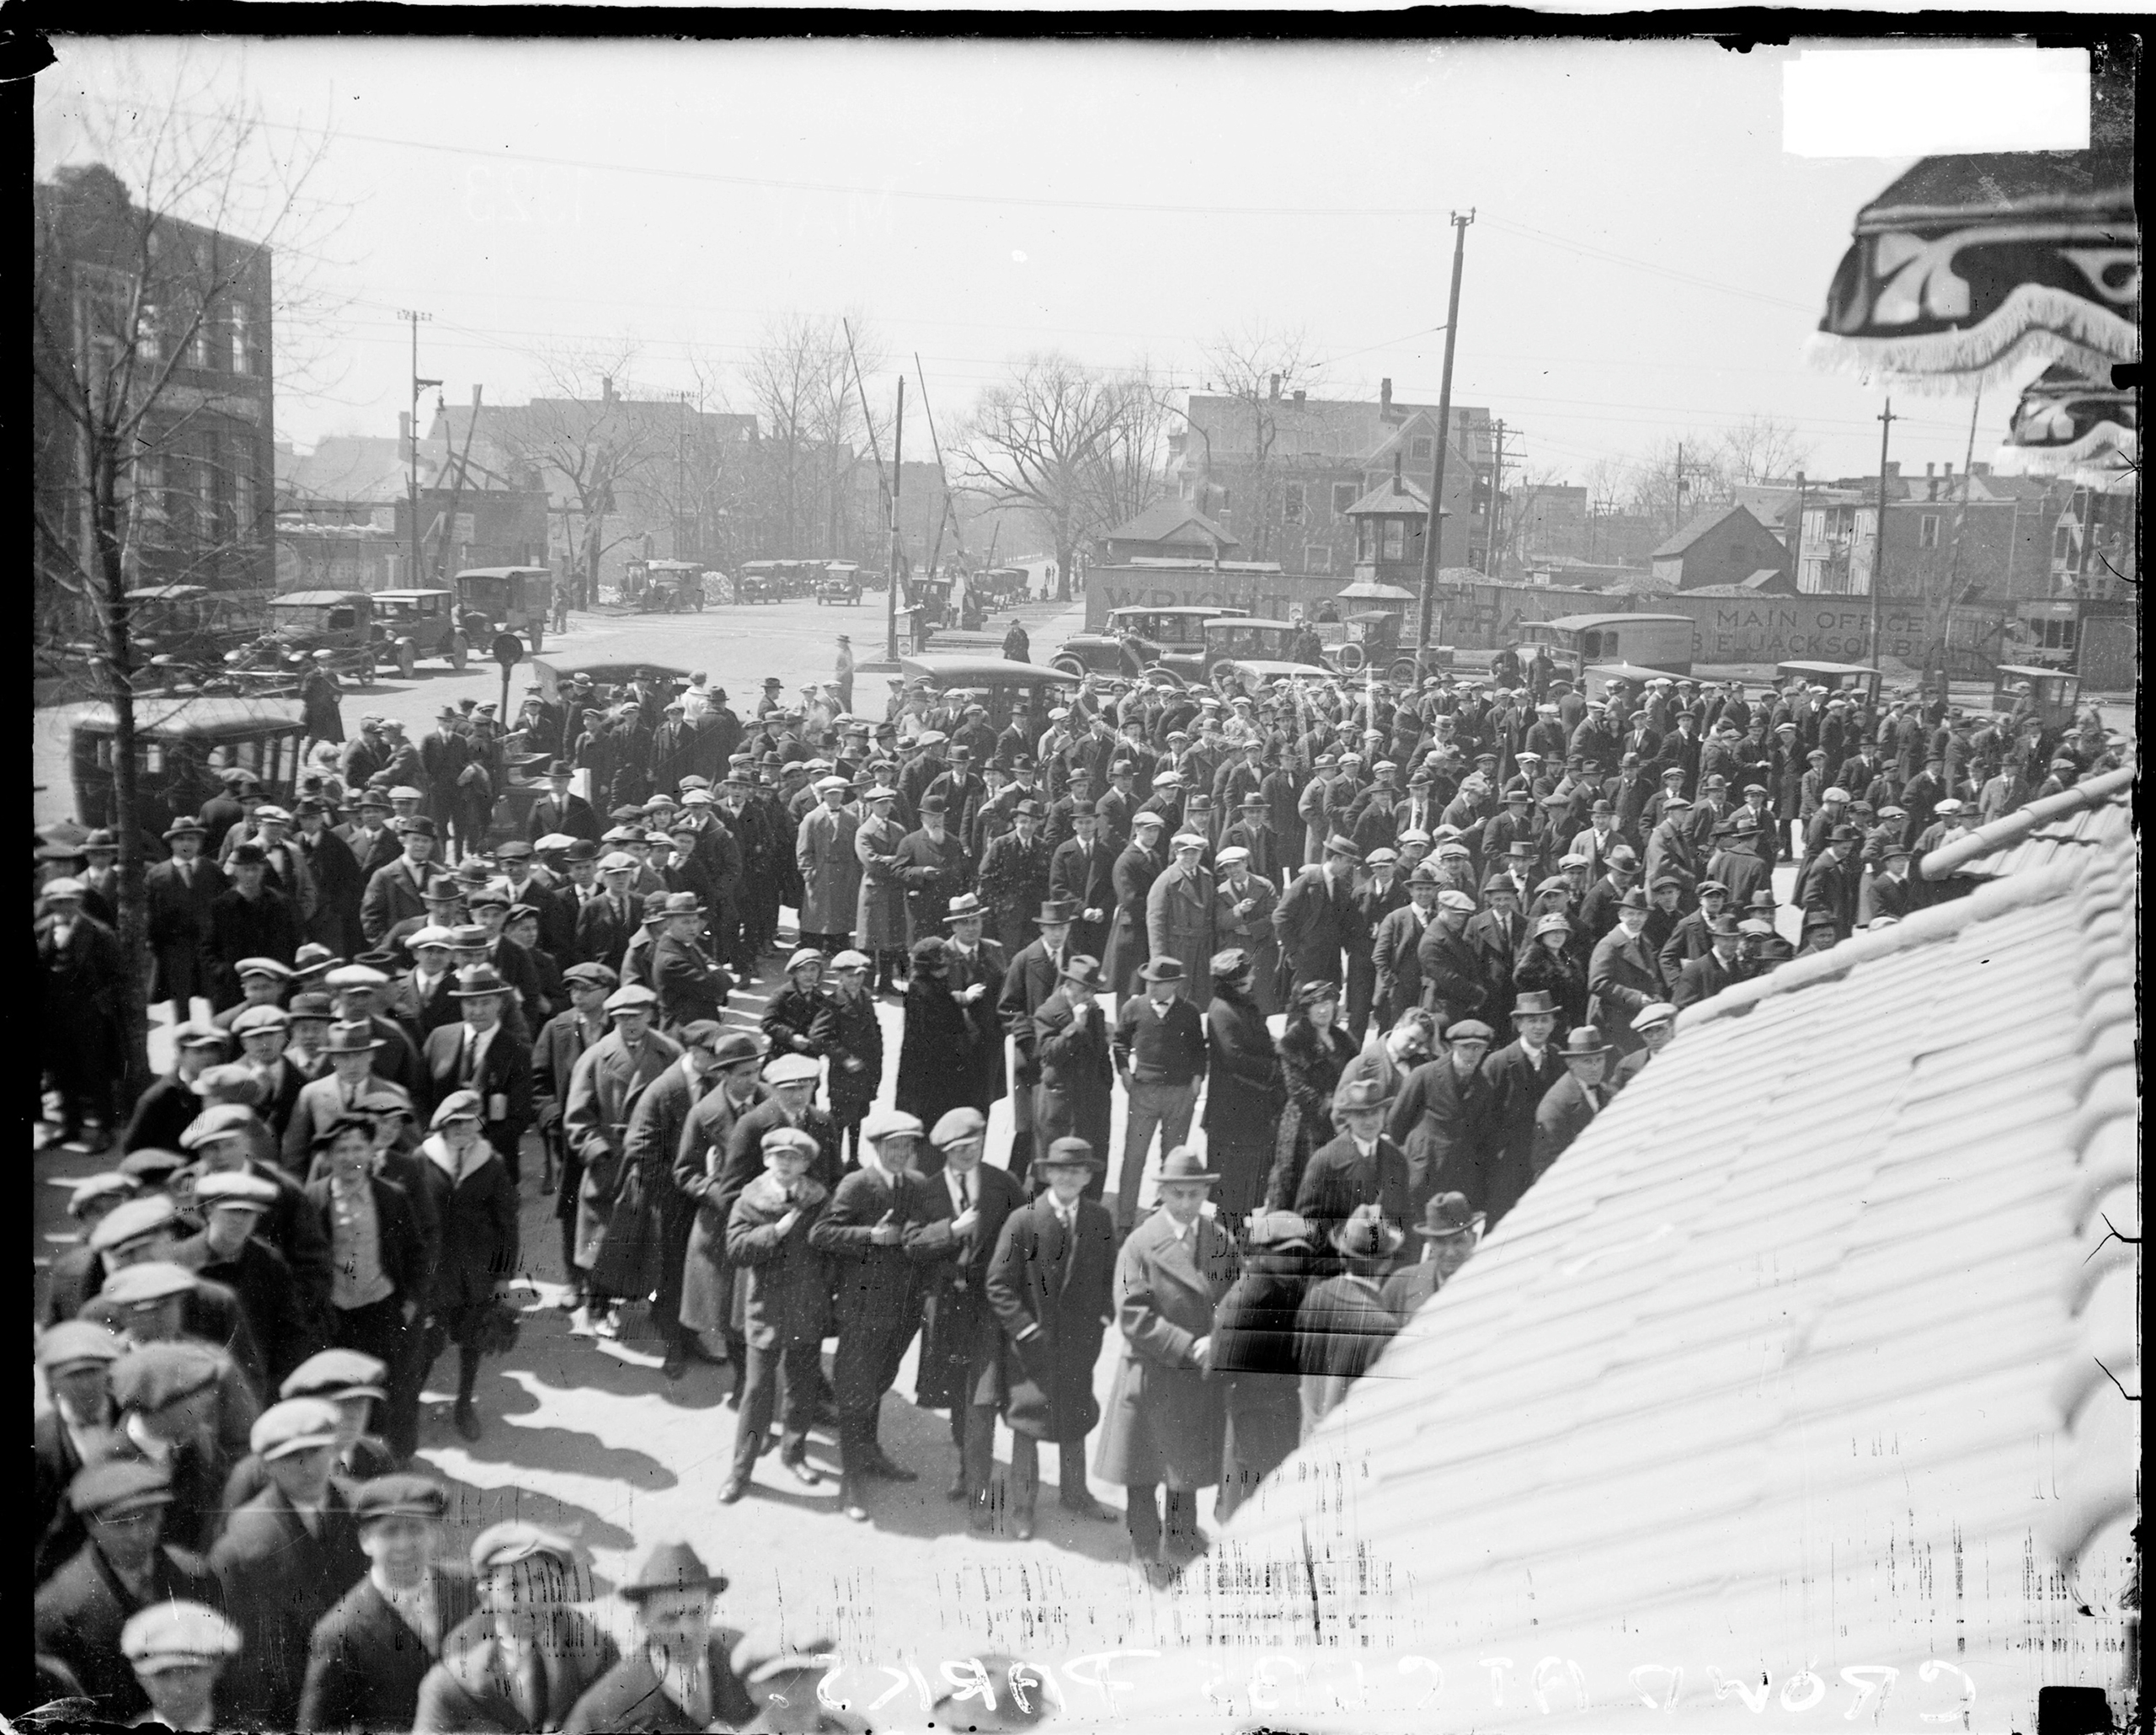 Crowds waiting in lines outside Weeghman Park, Chicago, 1923. From the Chicago Daily News collection.